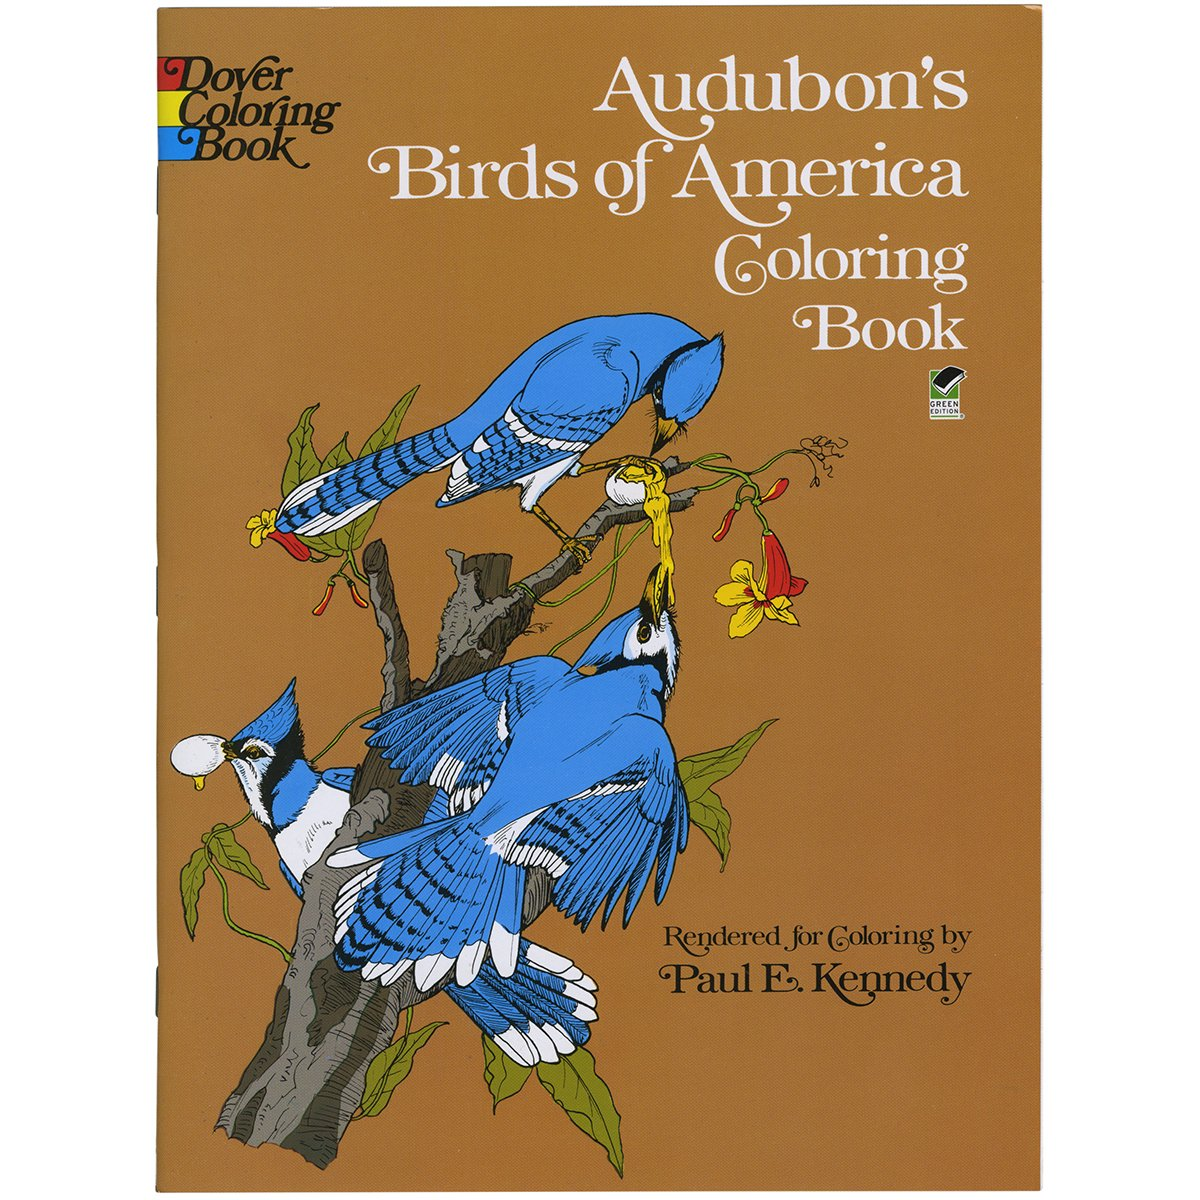 Audubons Birds Of America Coloring Book John James Audubon Books 9780486230498 Amazon